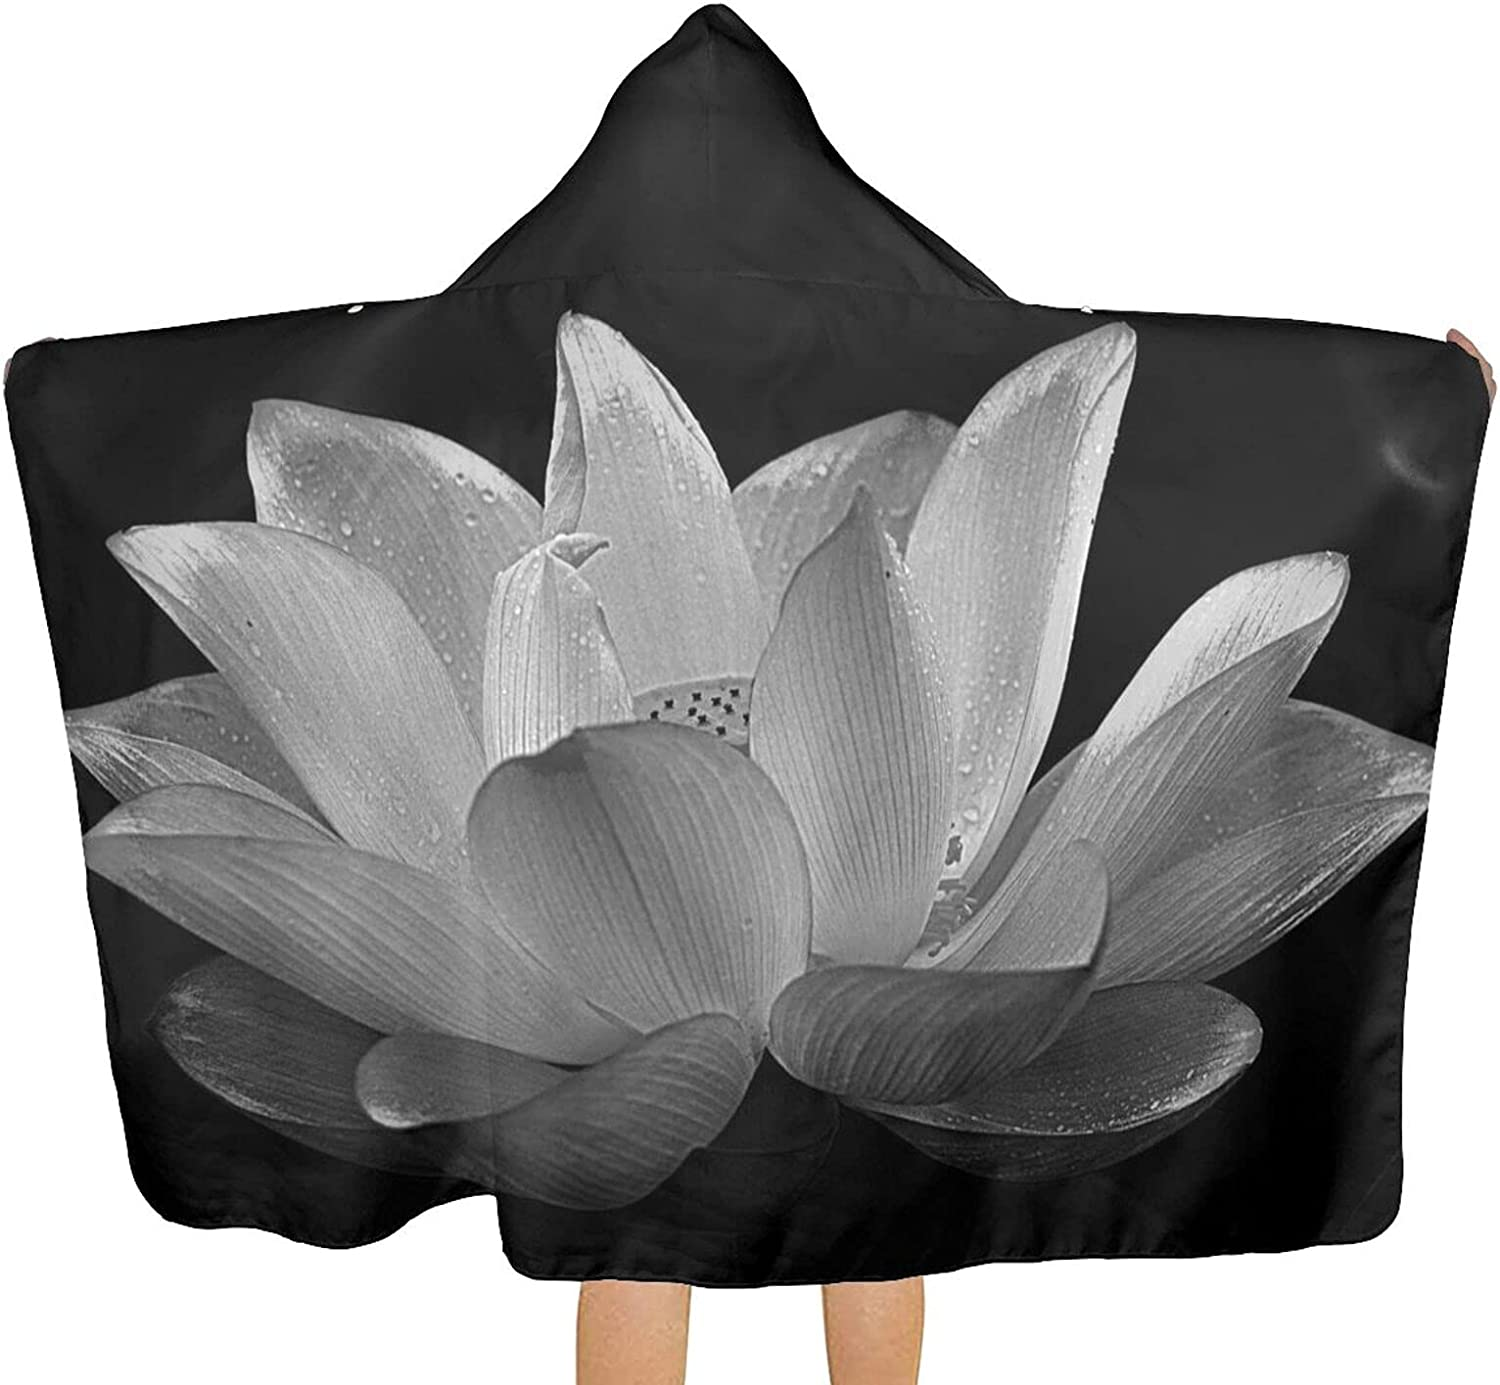 MESCCHSK Black At the price of surprise White Flower Printed Max 88% OFF Beach Towel T Hood Bath with